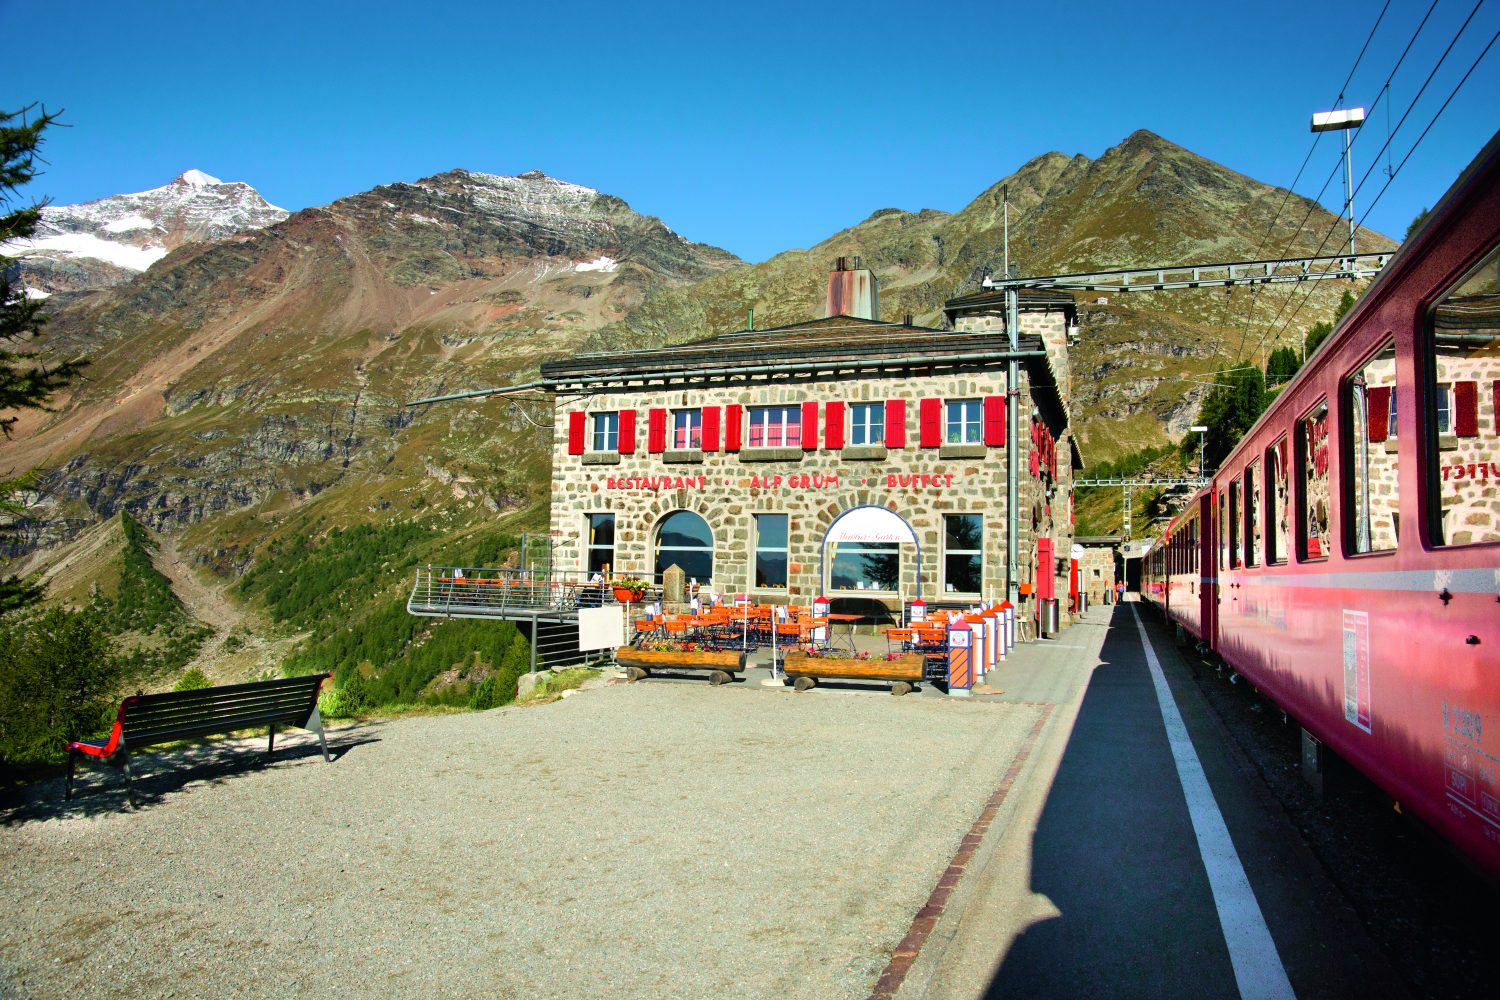 Bernina Express treinstationn Alp Gruem